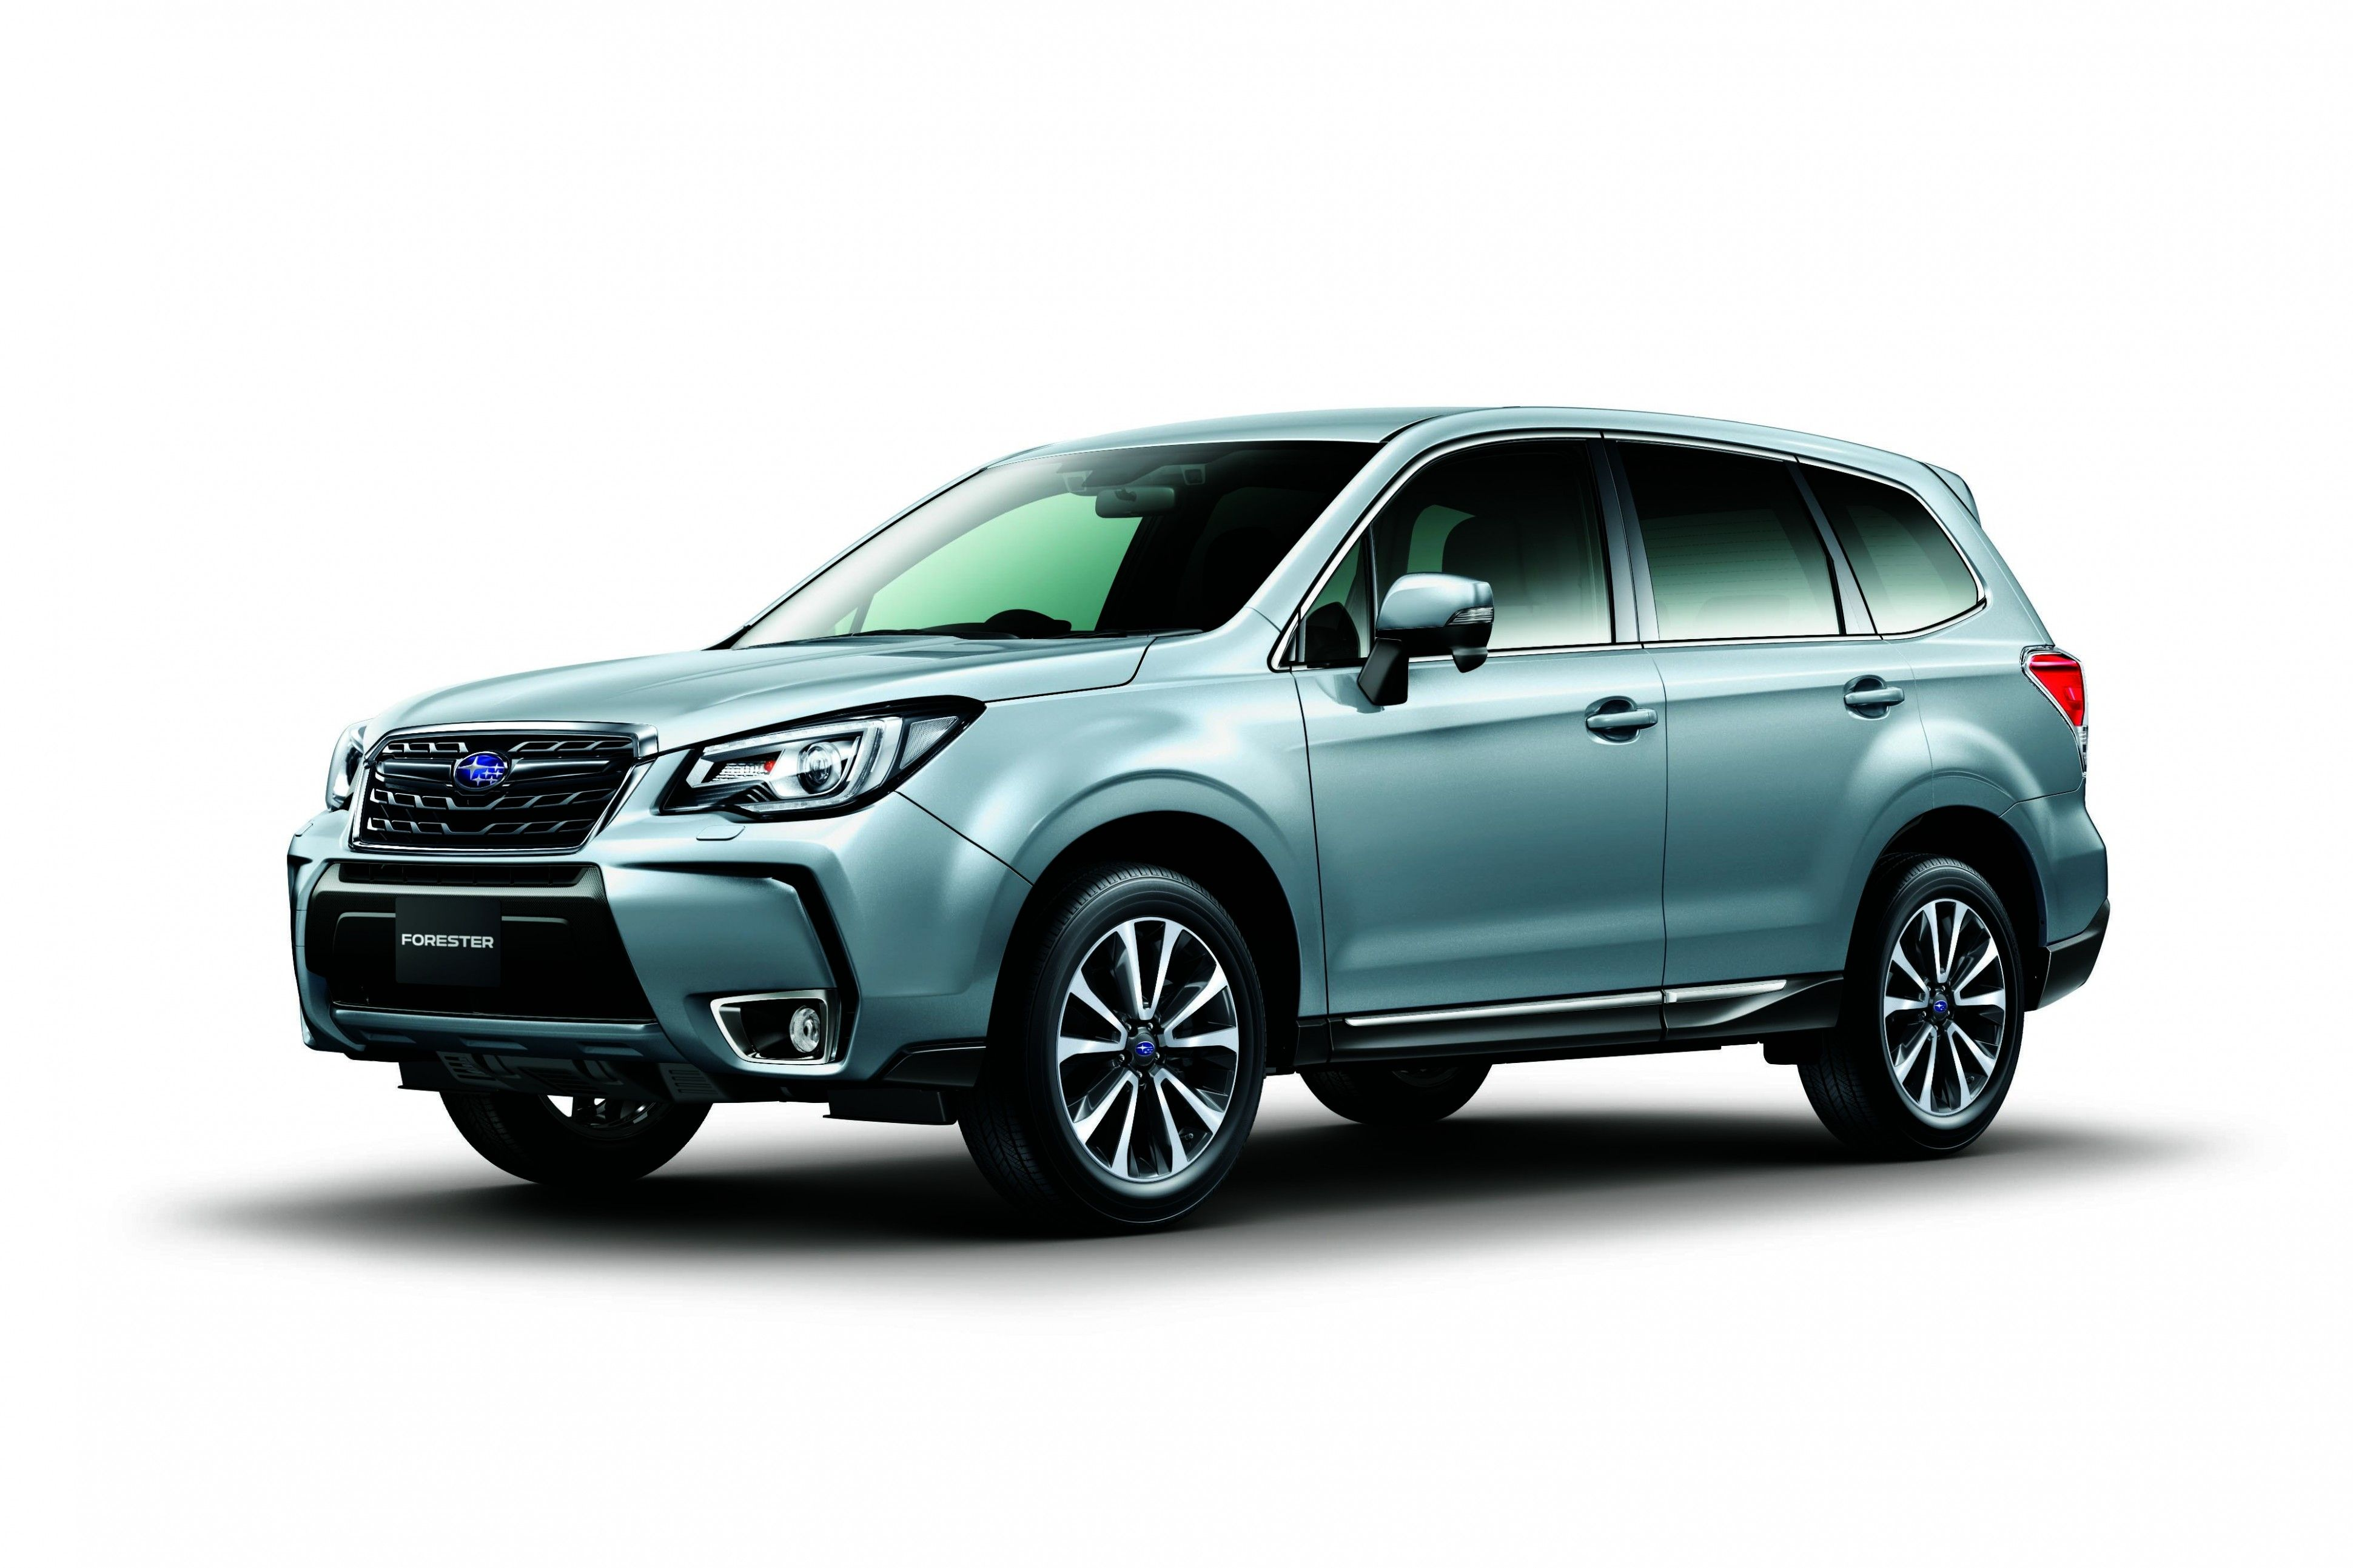 2020 Subaru Forester Colors Pricing 2020 subaru forester